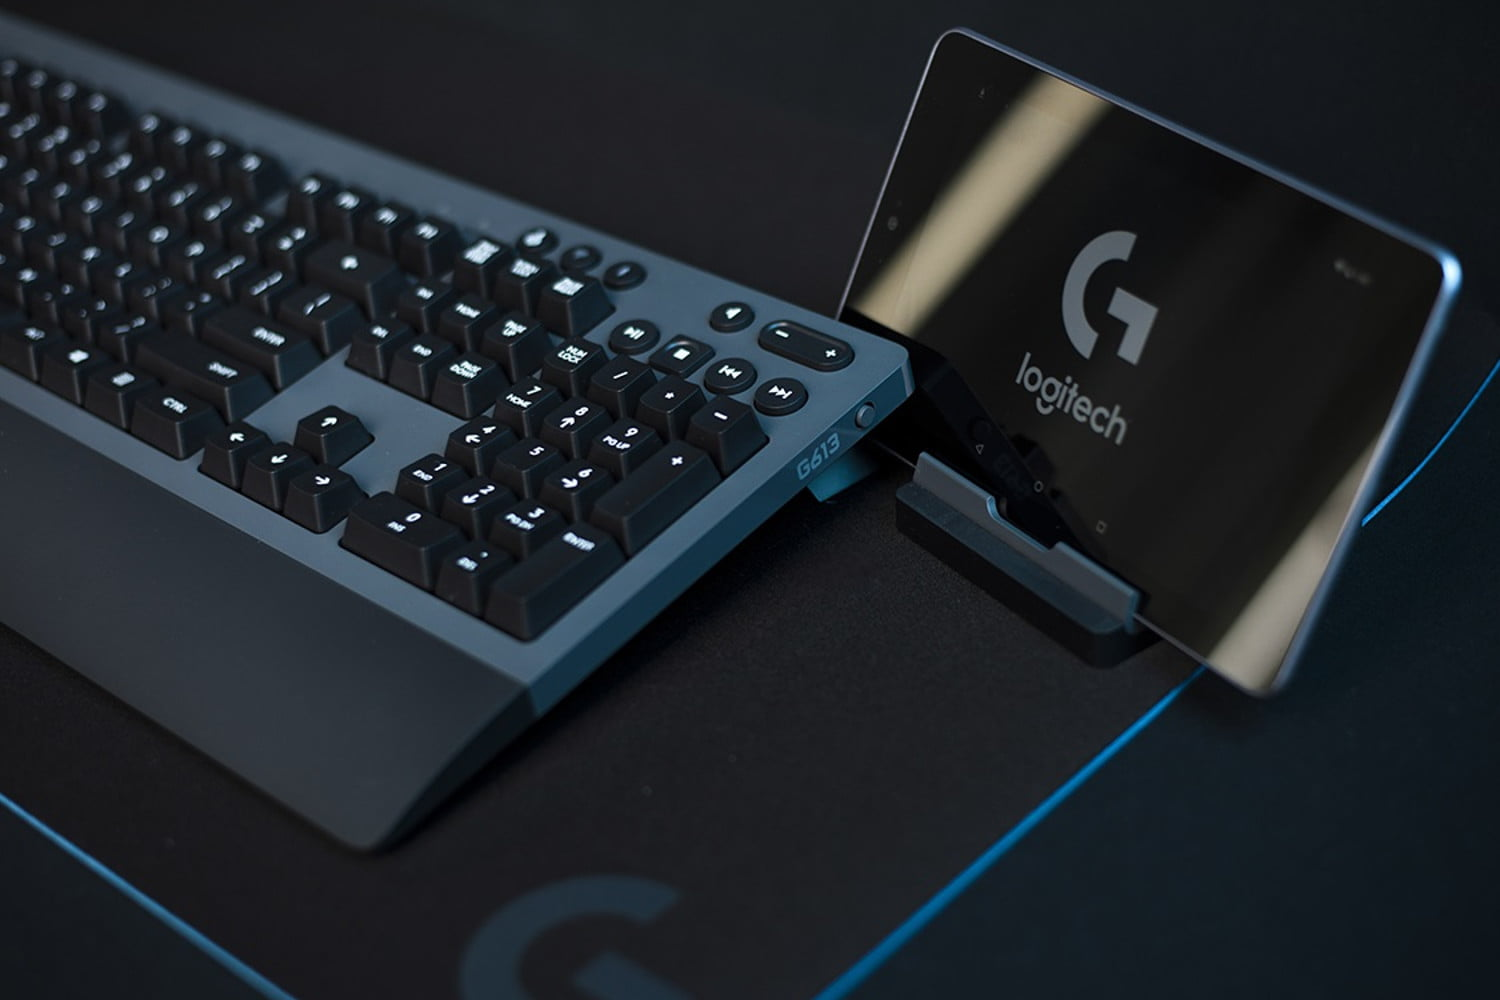 04994ae7a72 New Logitech G Lightspeed Wireless Peripherals Combine Work And Play    Digital Trends